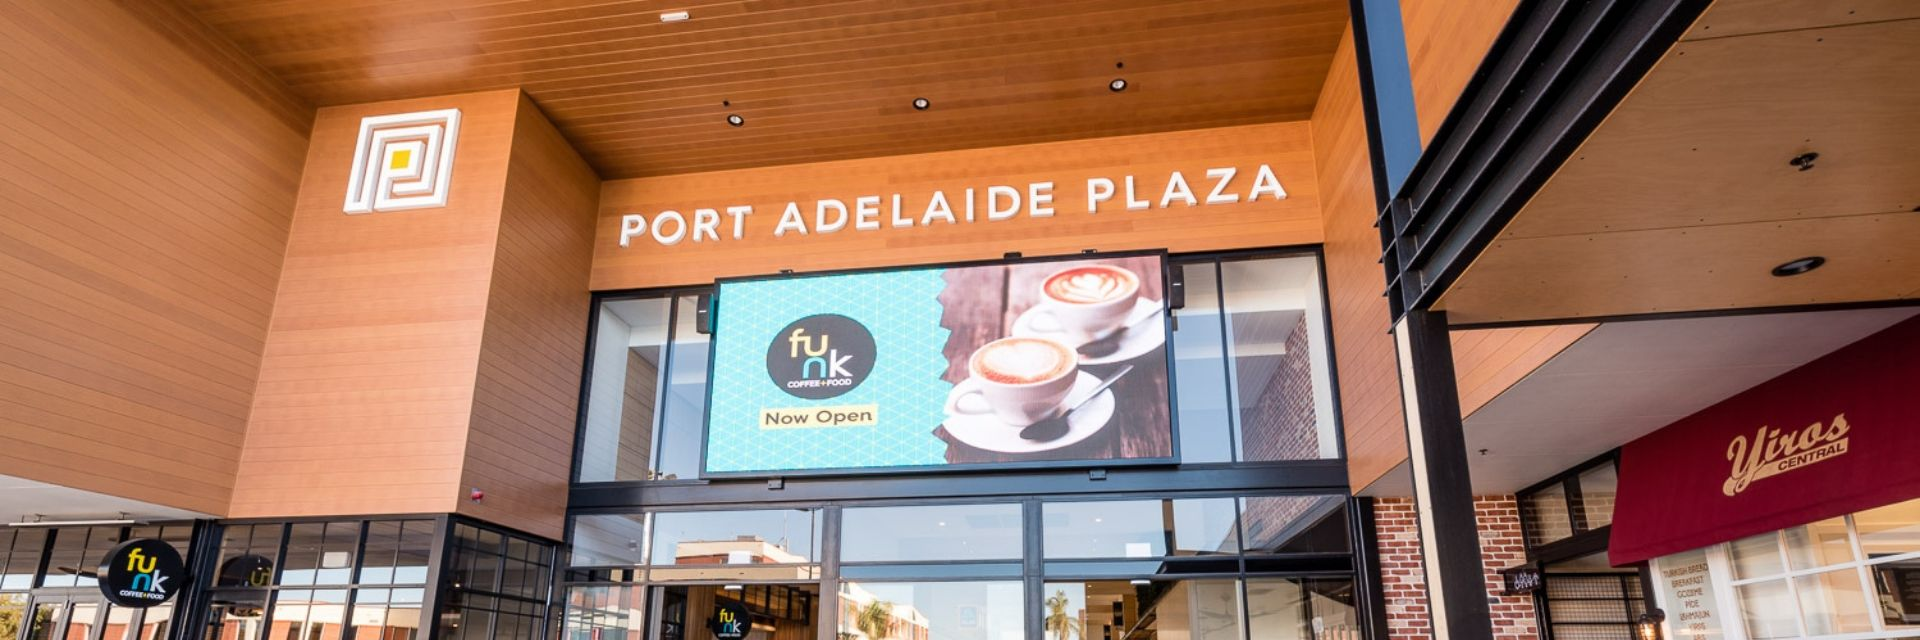 Port Adelaide Plaza